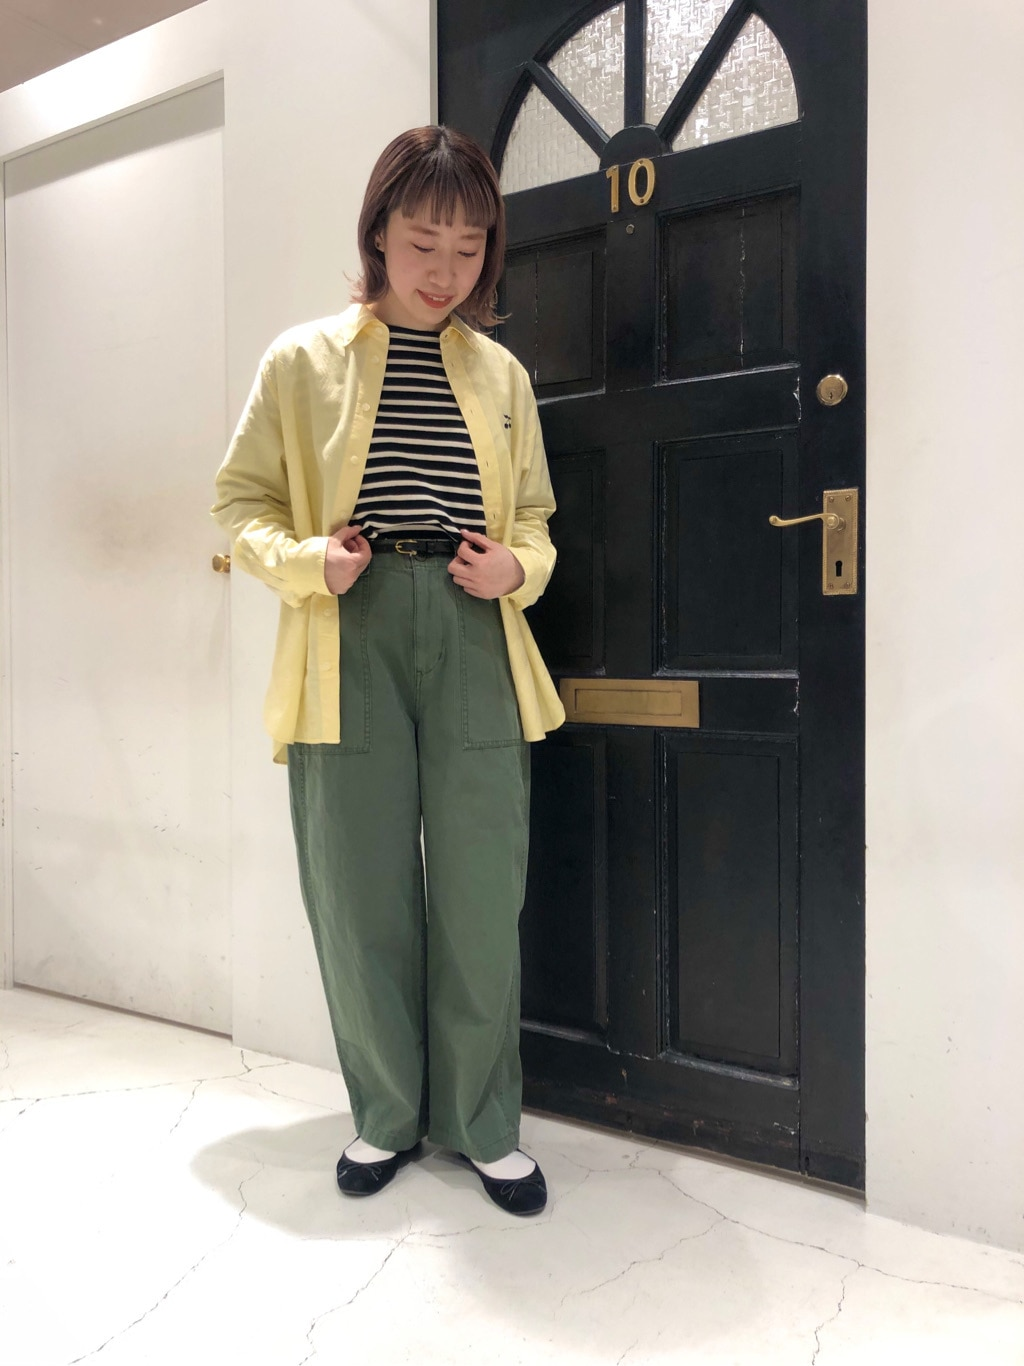 Dot and Stripes CHILD WOMAN ルクアイーレ 身長:157cm 2021.02.04